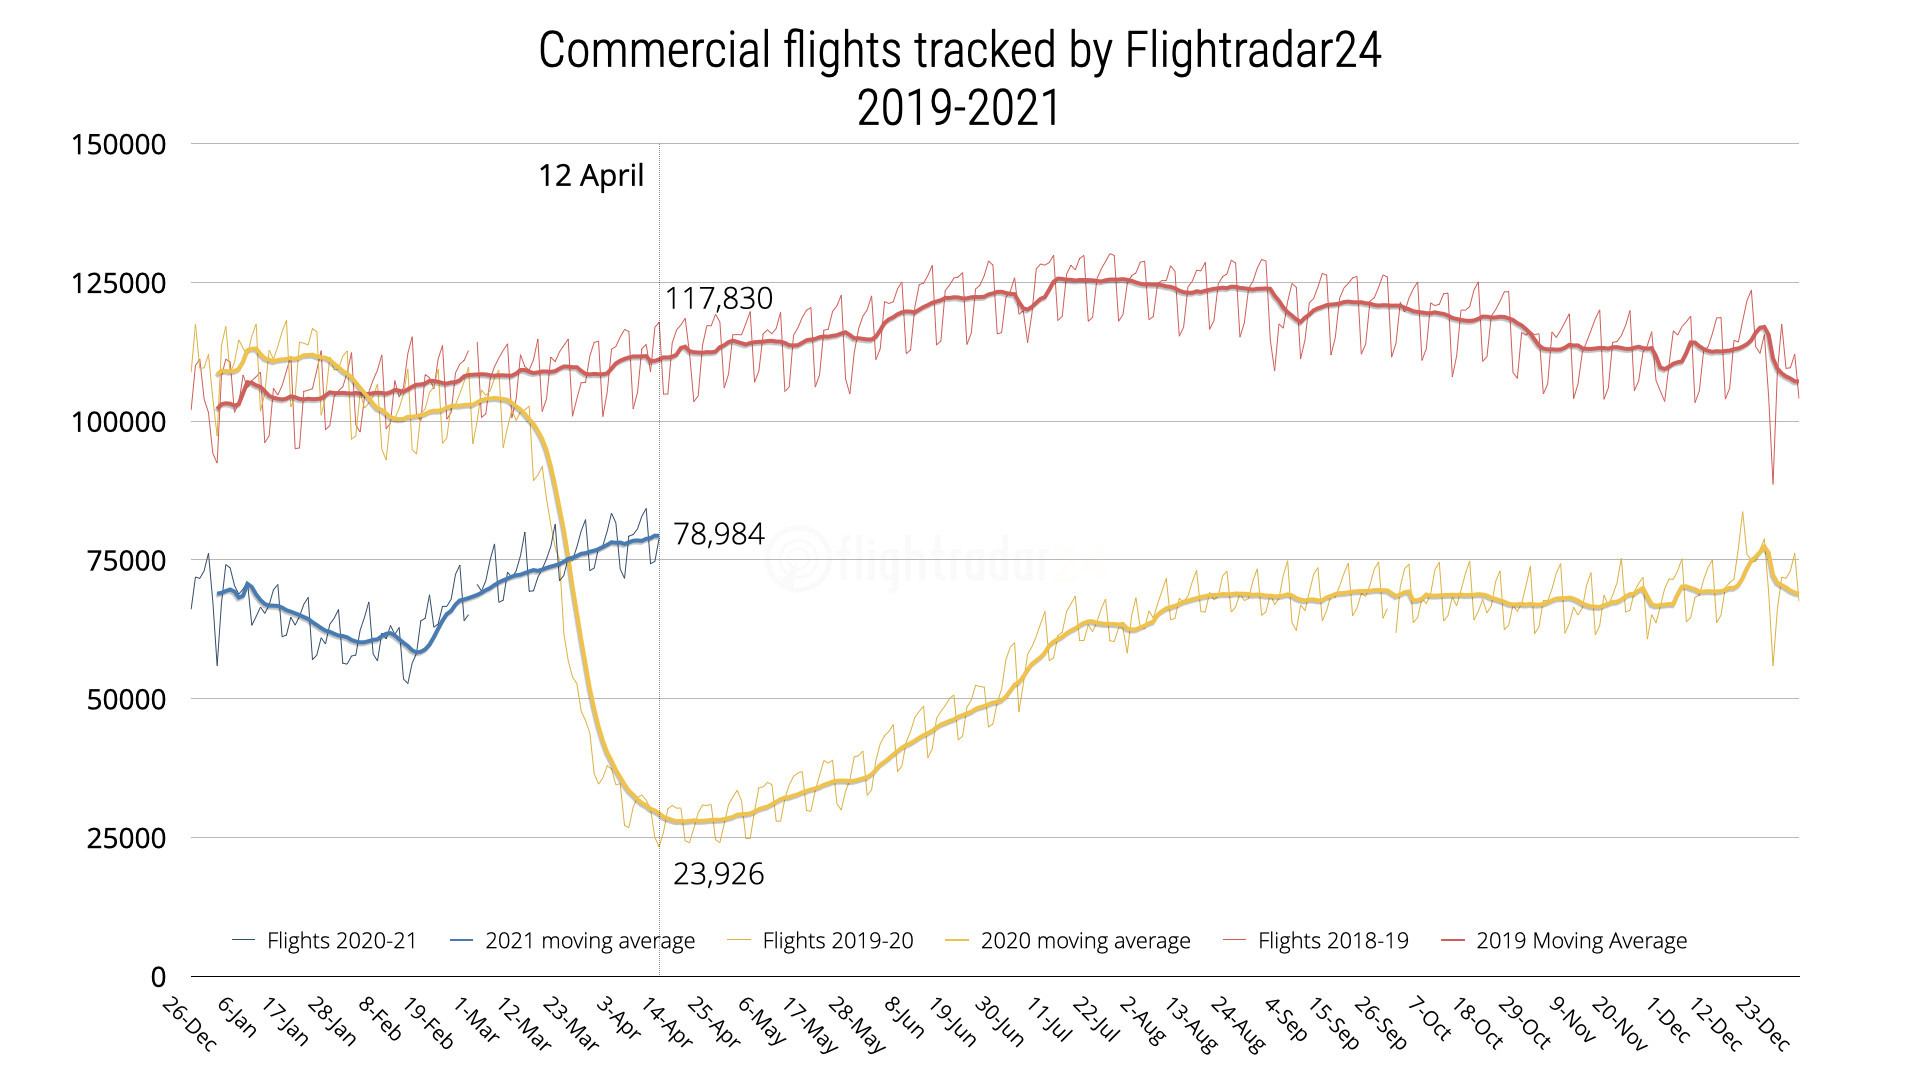 Chart showing commercial flights tracked by Flightradar24 from January 2019 to April 12, 2021